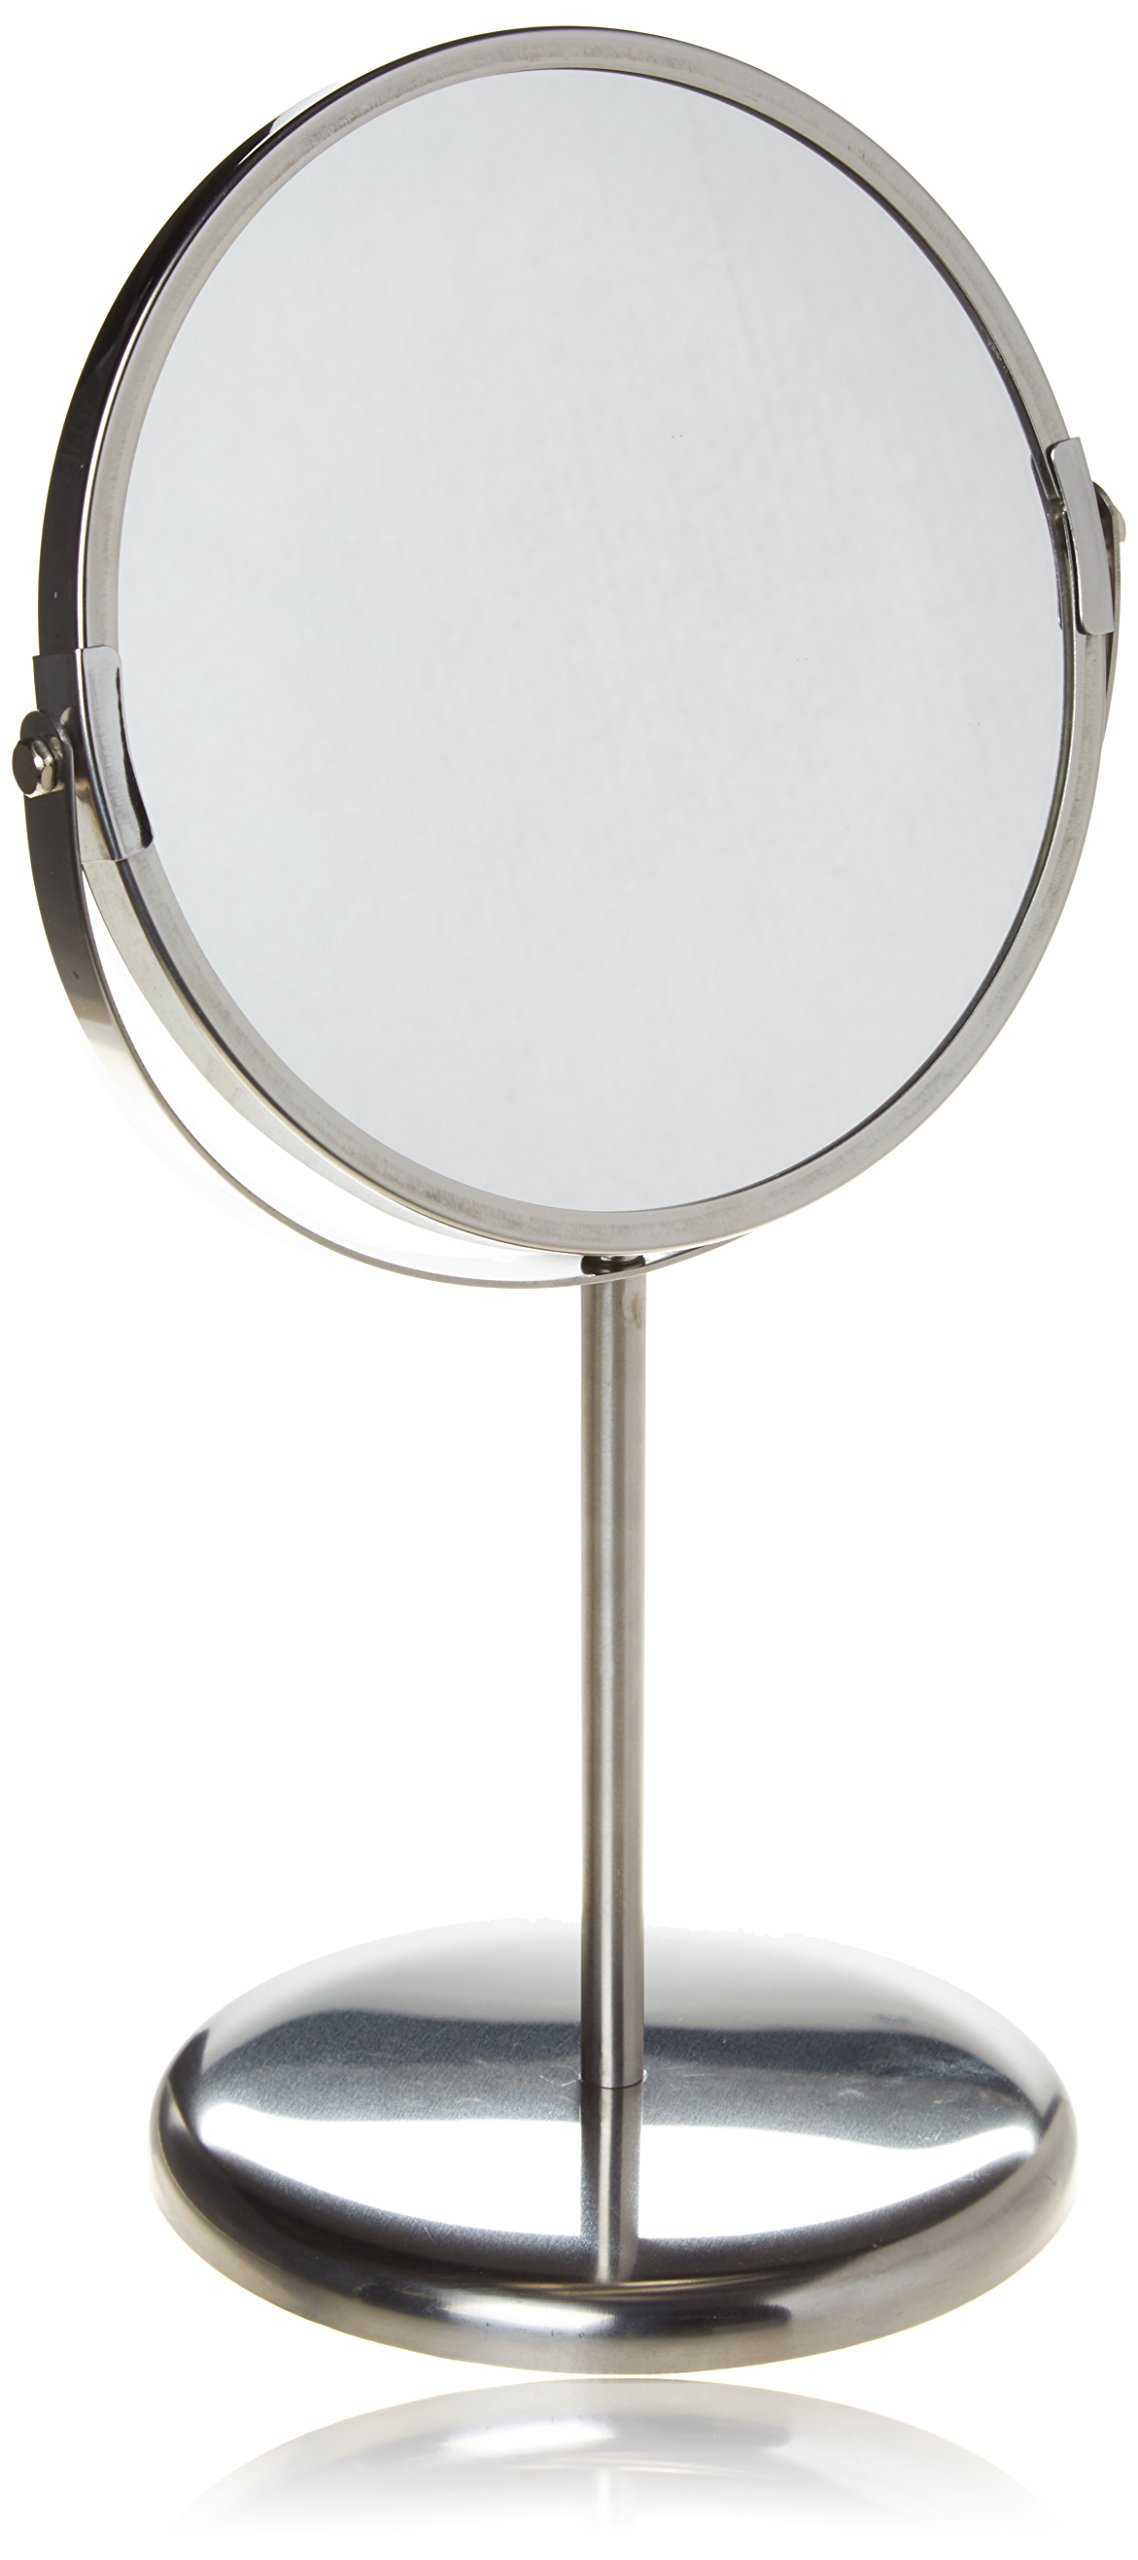 Ikea Trensum Double Sided Magnifying Make up Table Mirror Stainless Steel Frame